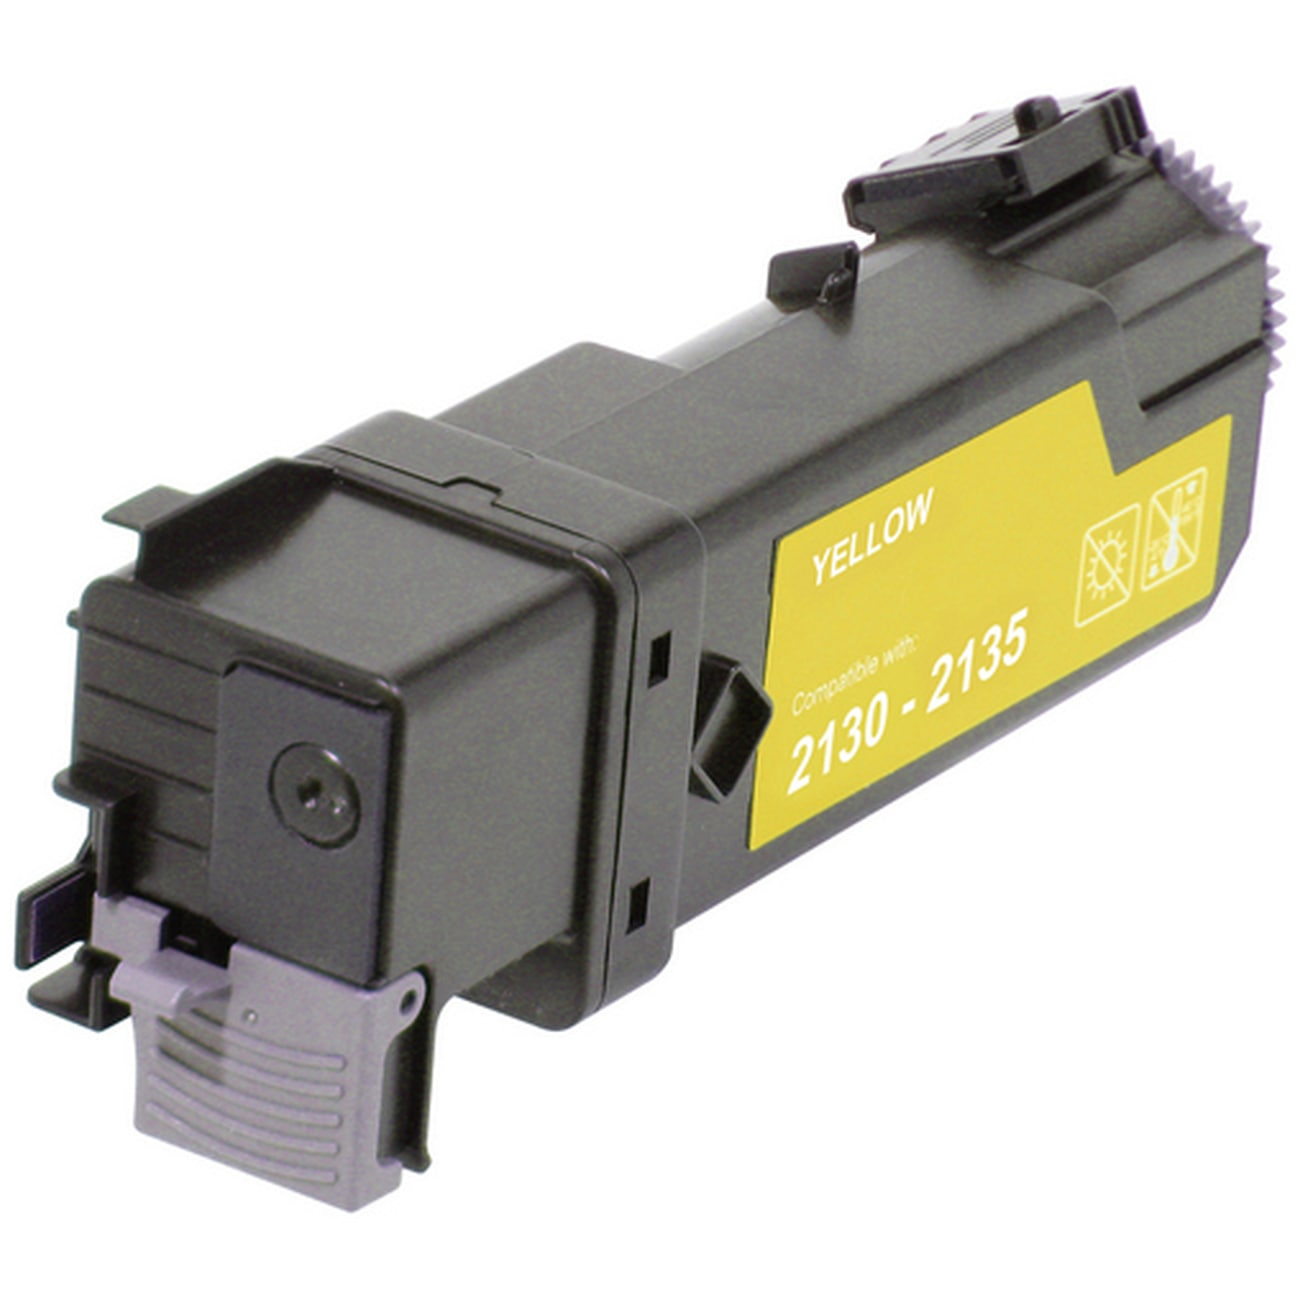 Compatible Dell 330-1438 Yellow Toner Cartridge